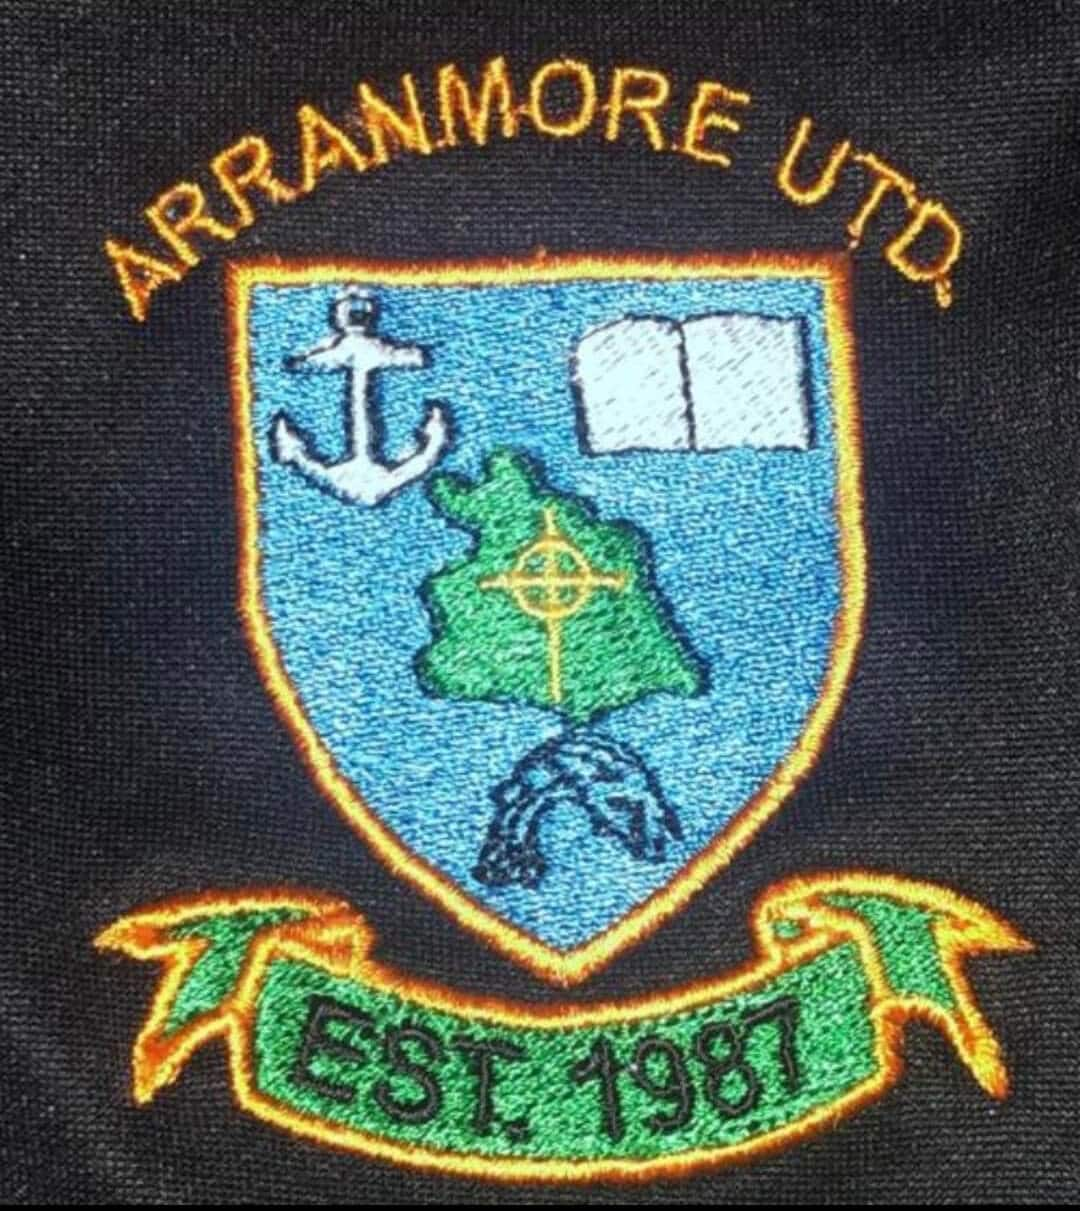 The old Arranmore Logo